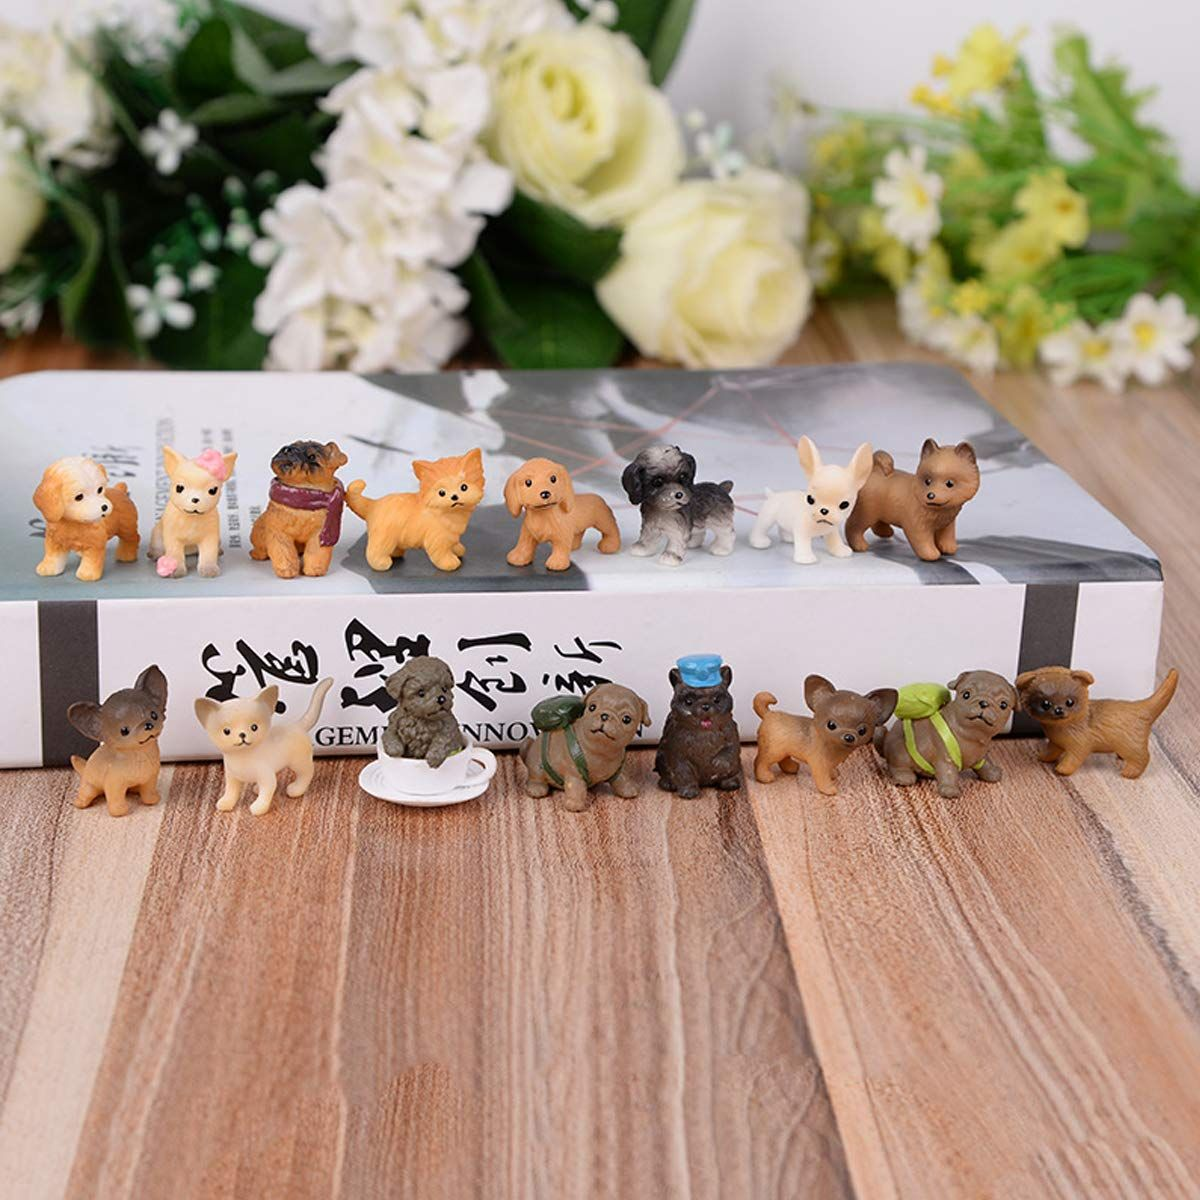 Guasslee Mini Plastic Puppy Dog Figurines For Kids 28 Pack High